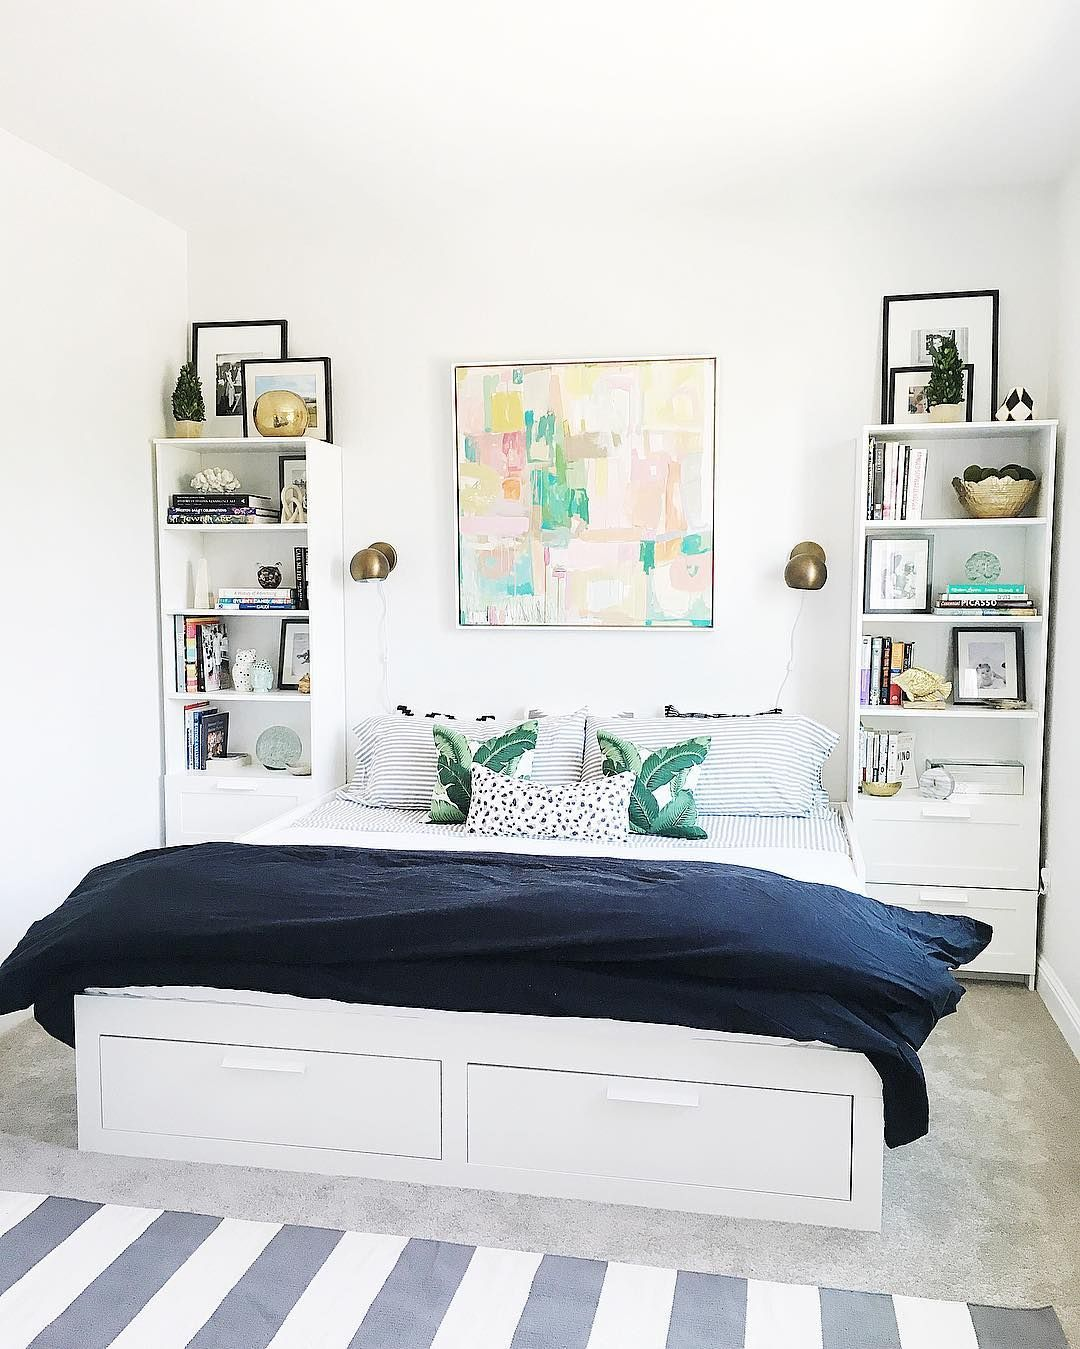 IKEA Guest Room with Daybed